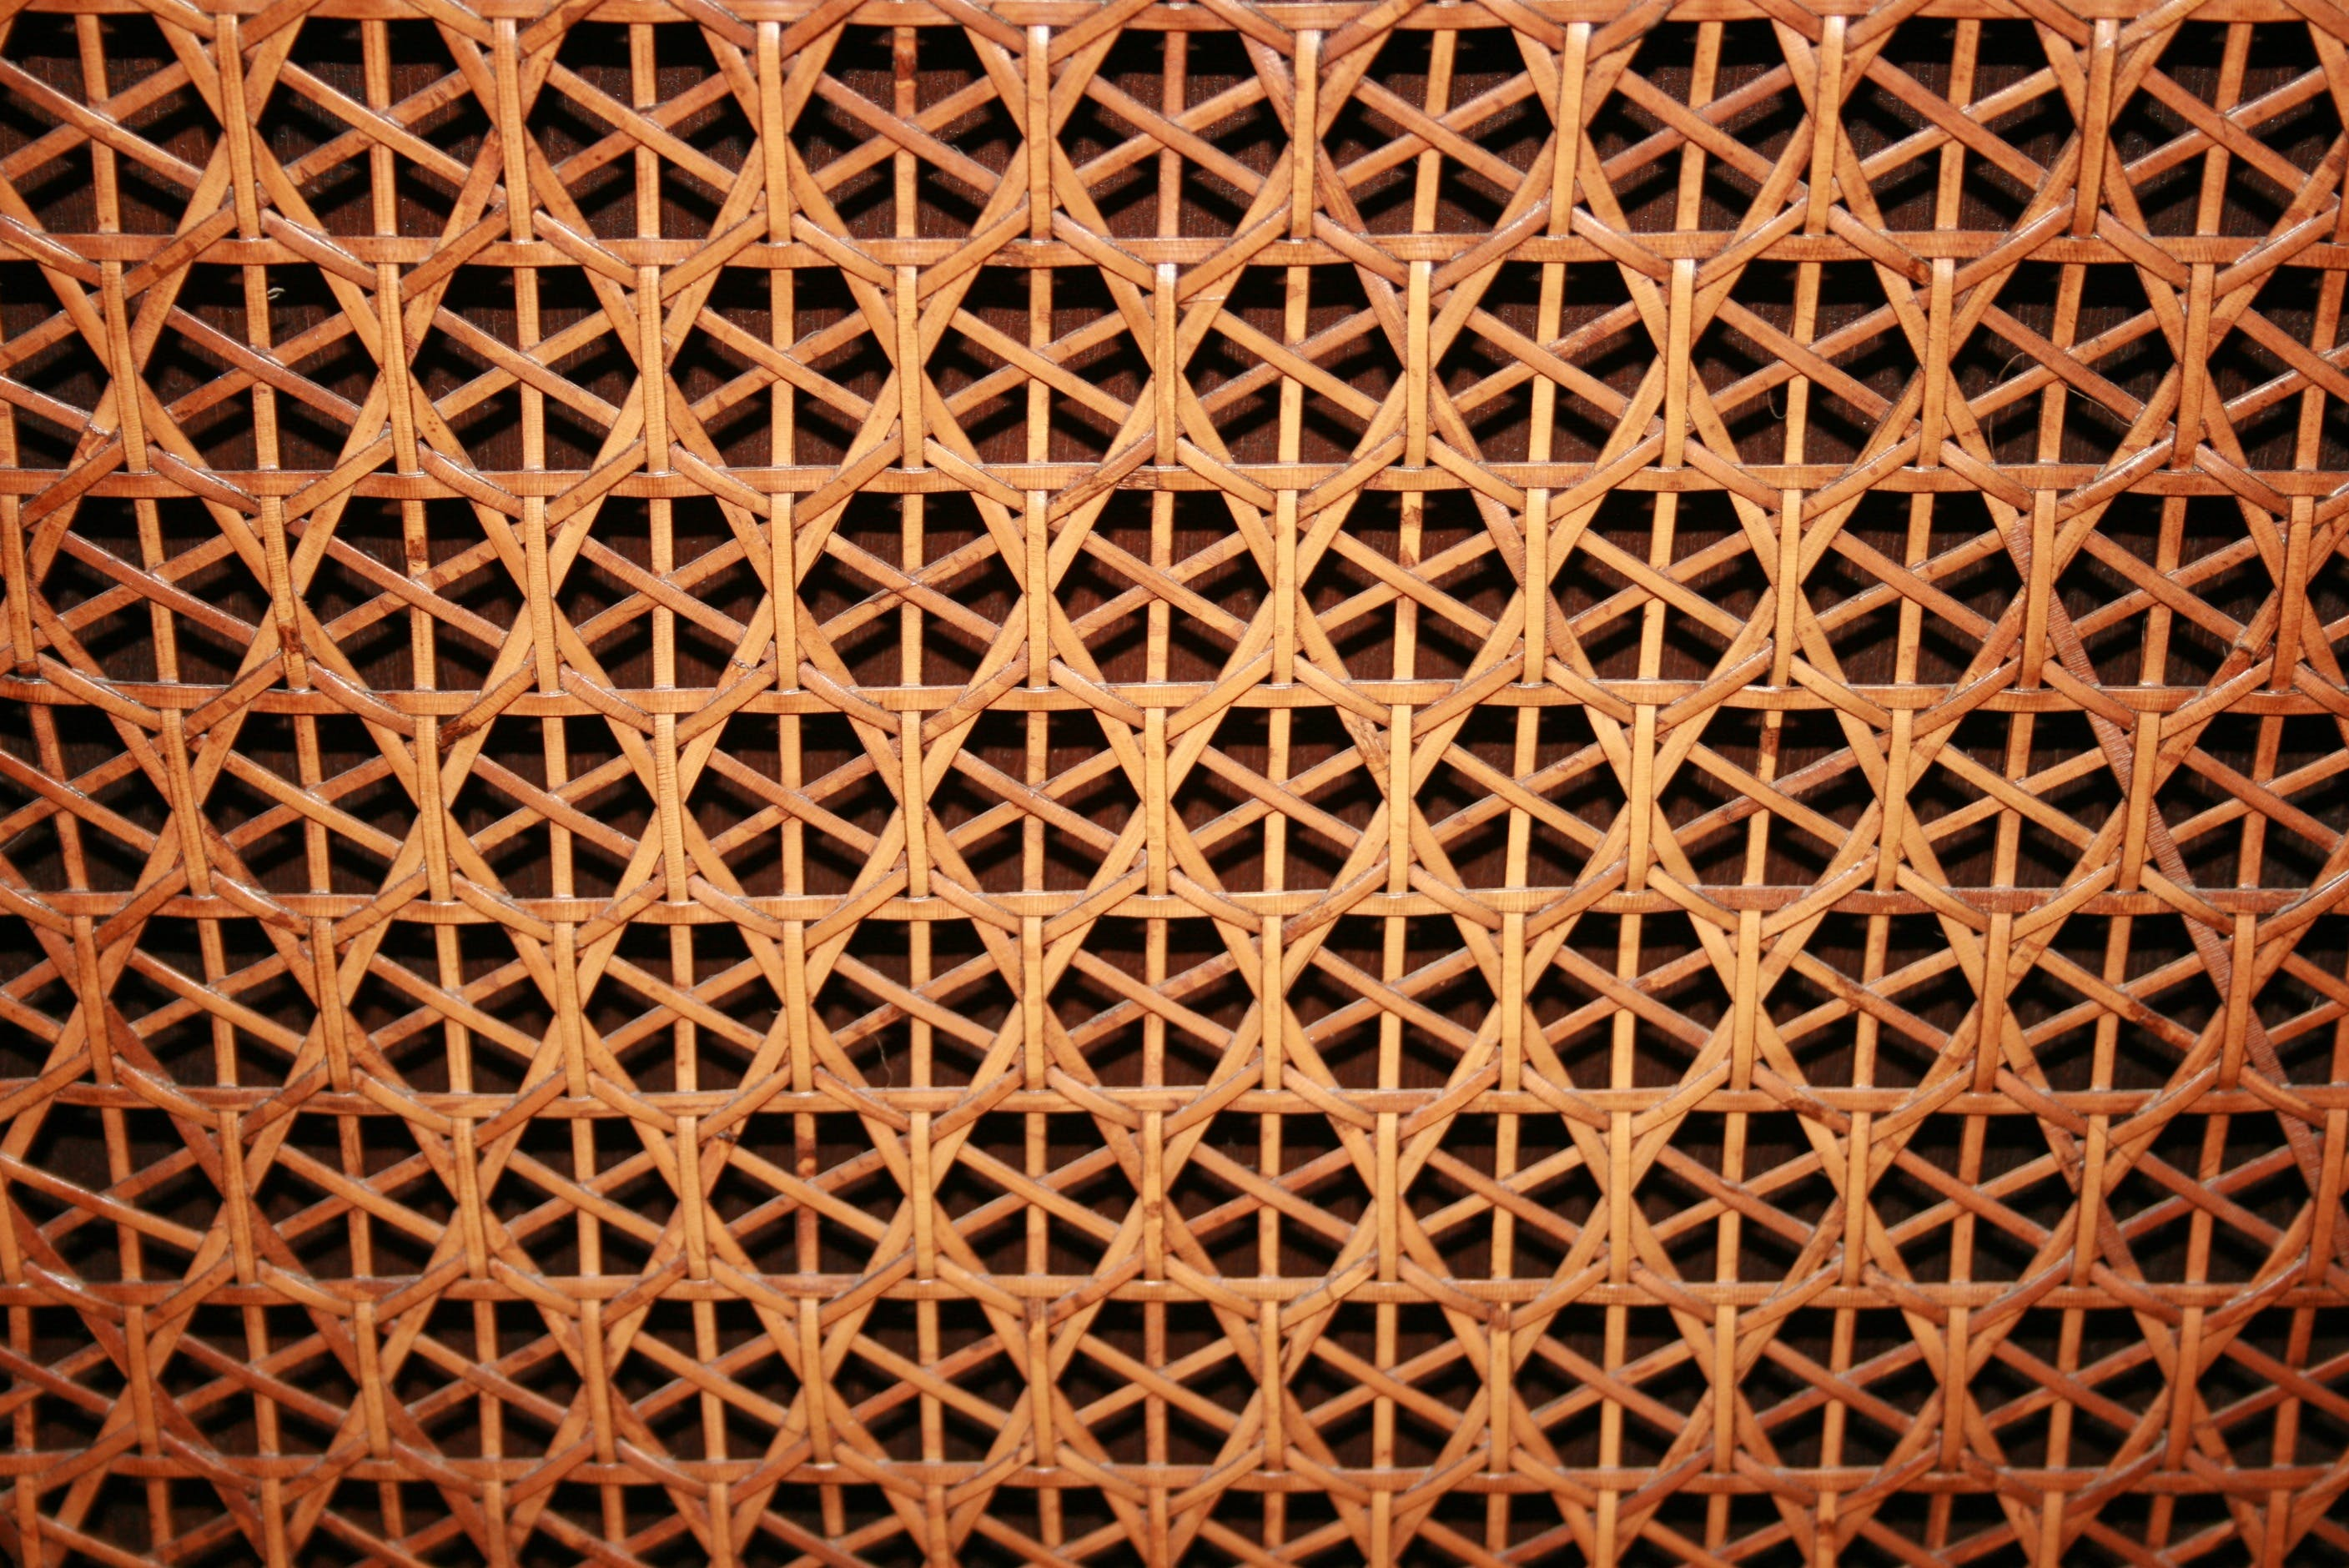 Brown Wicker Surface